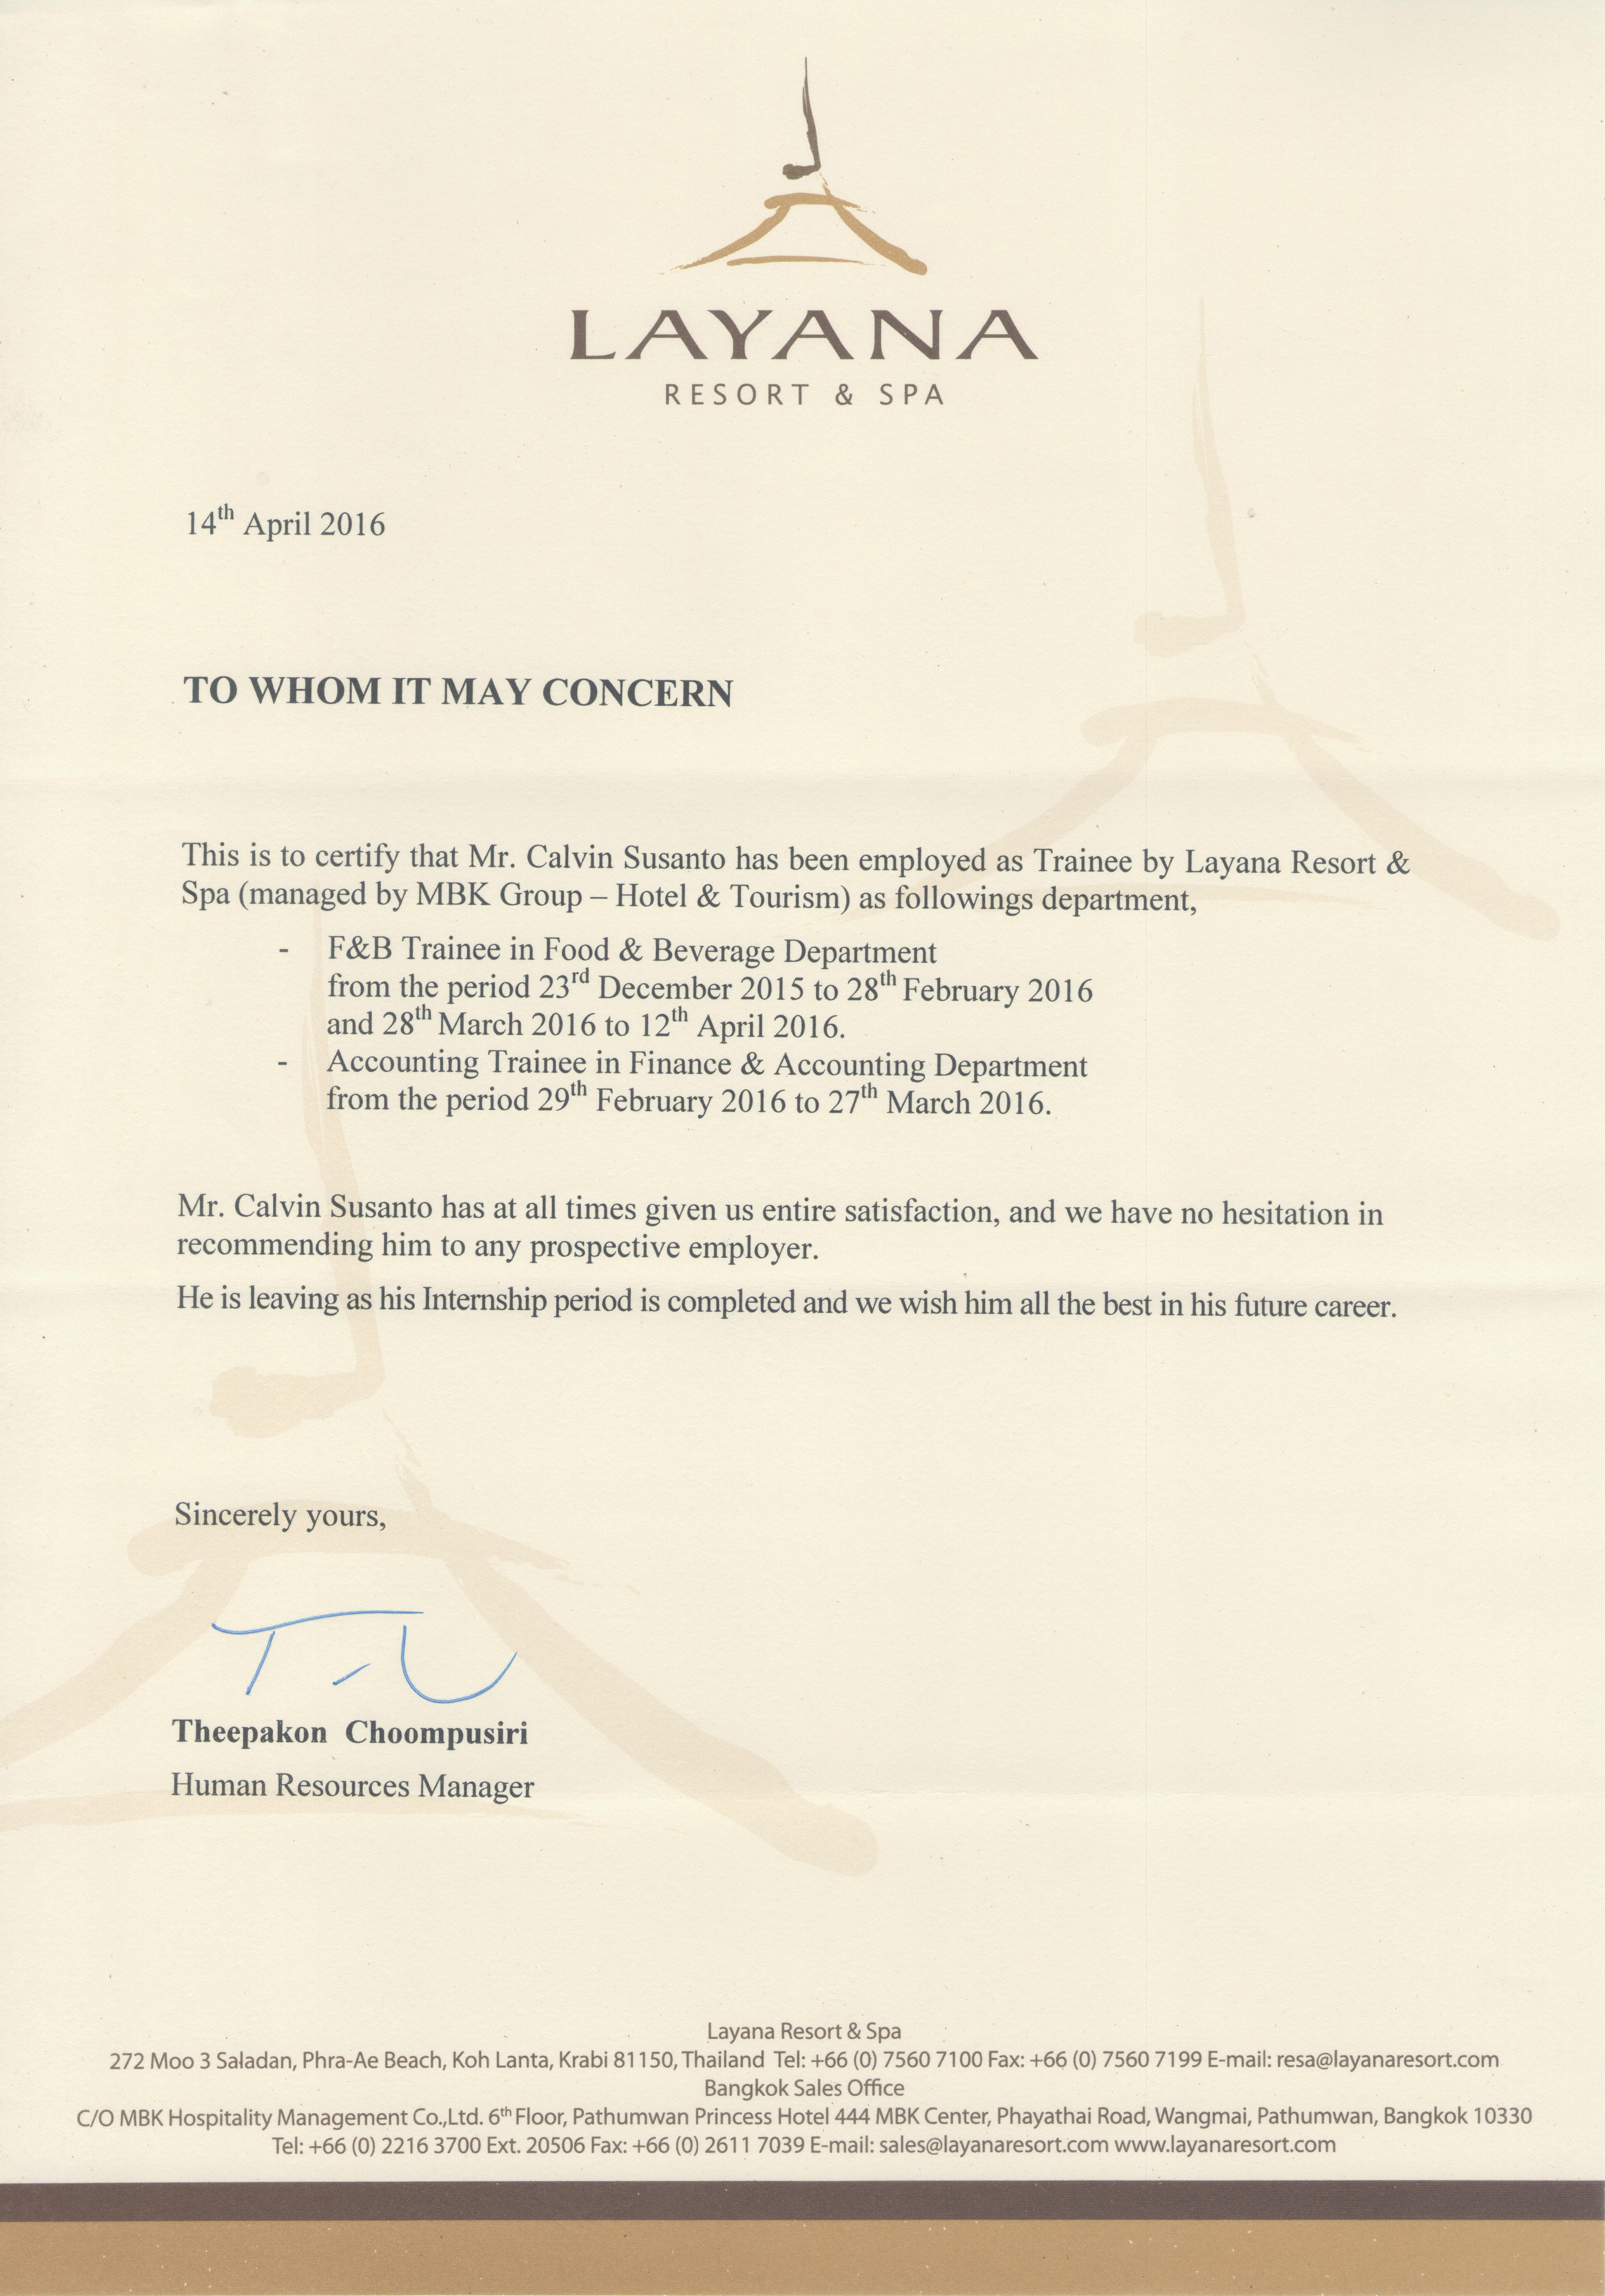 Letter of Recommendation by Theepakon Choompusiri as Human Resources Manager - Calvin Susanto 58110675.jpg